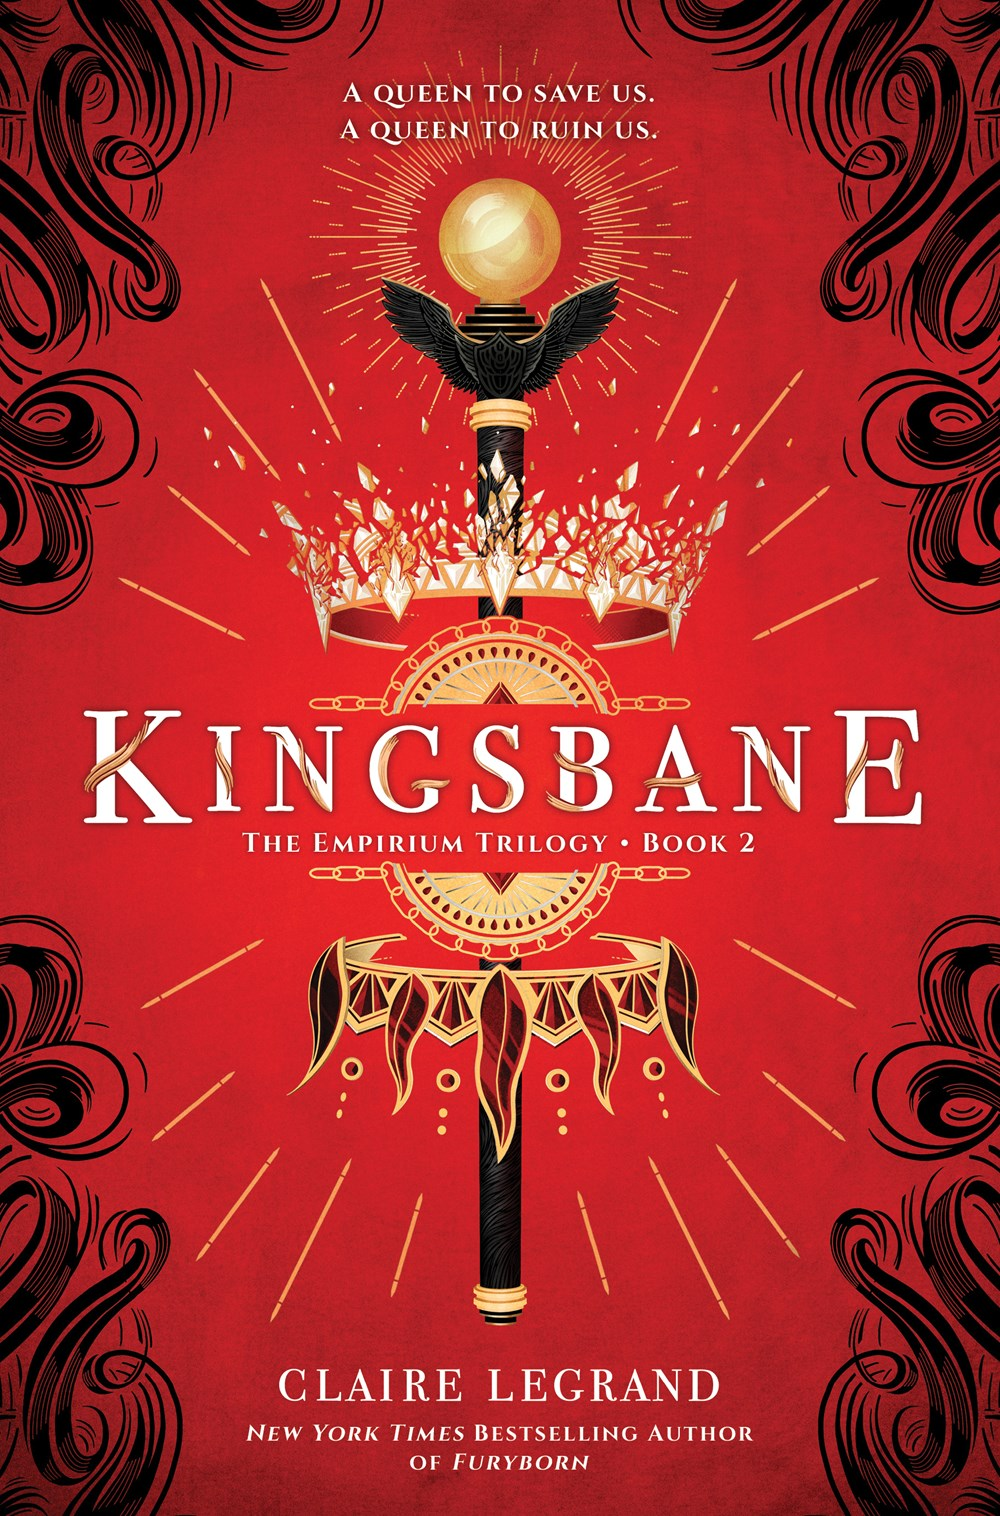 Kingsbane by Claire Legrand Book Cover